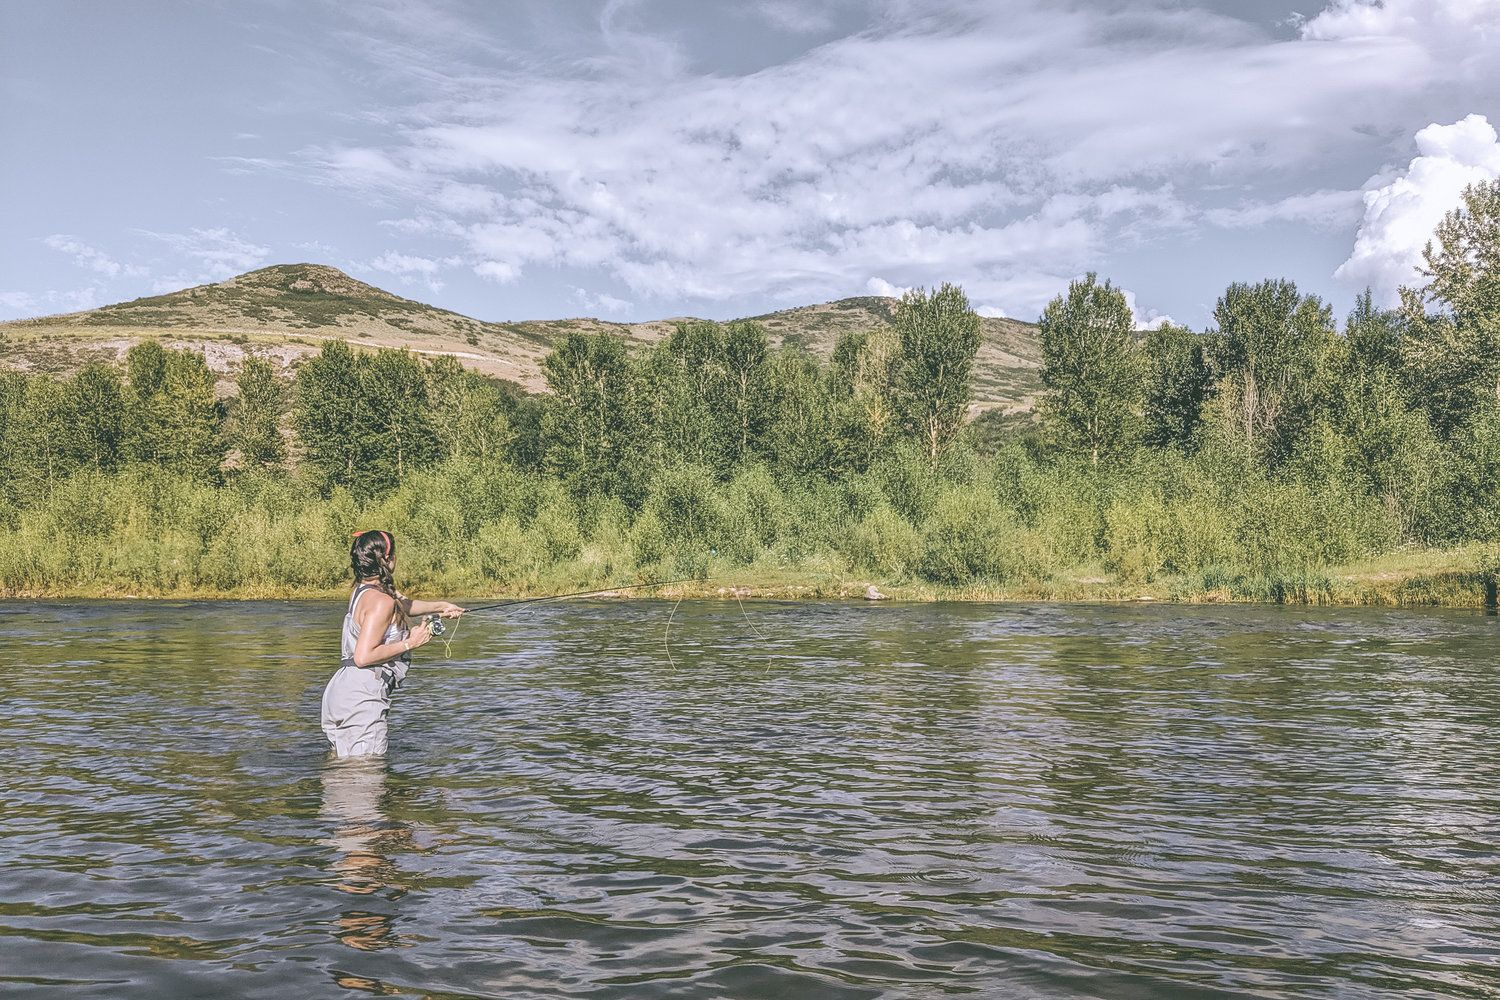 A First Timer S Travel Guide To An Epic Summer In Park City What To Do Where To Eat And More Park City Utah Summer Park City Park City Utah